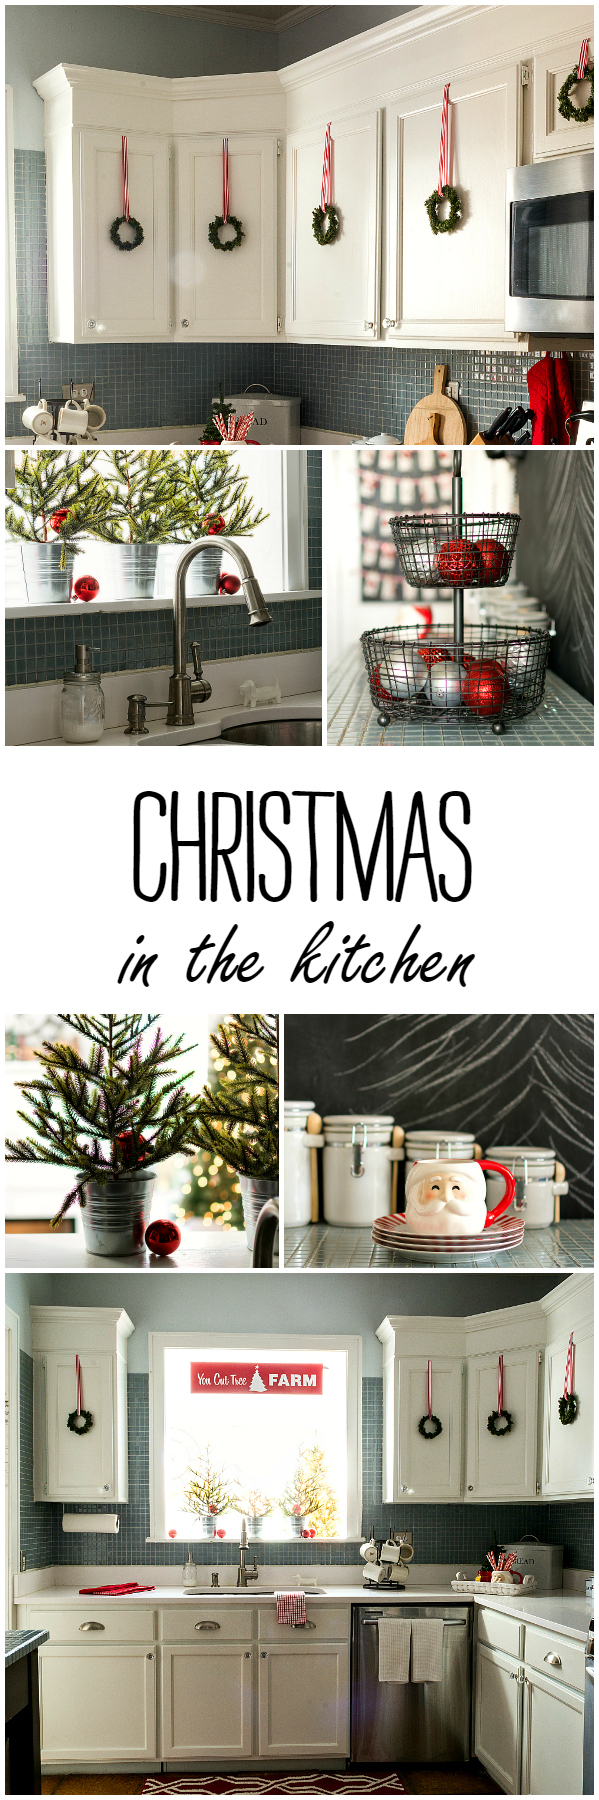 Christmas in the Kitchen on red kitchen appliances, red kitchen accessories, red decorative accessories, red kitchens with backsplashes, red and white kitchen, red kitchen supplies, red kitchen cabinets, red country kitchen, red kitchen themes, red apple kitchen decor, red kitchen items, red kitchen walls, red kitchen designs, red camper awning,